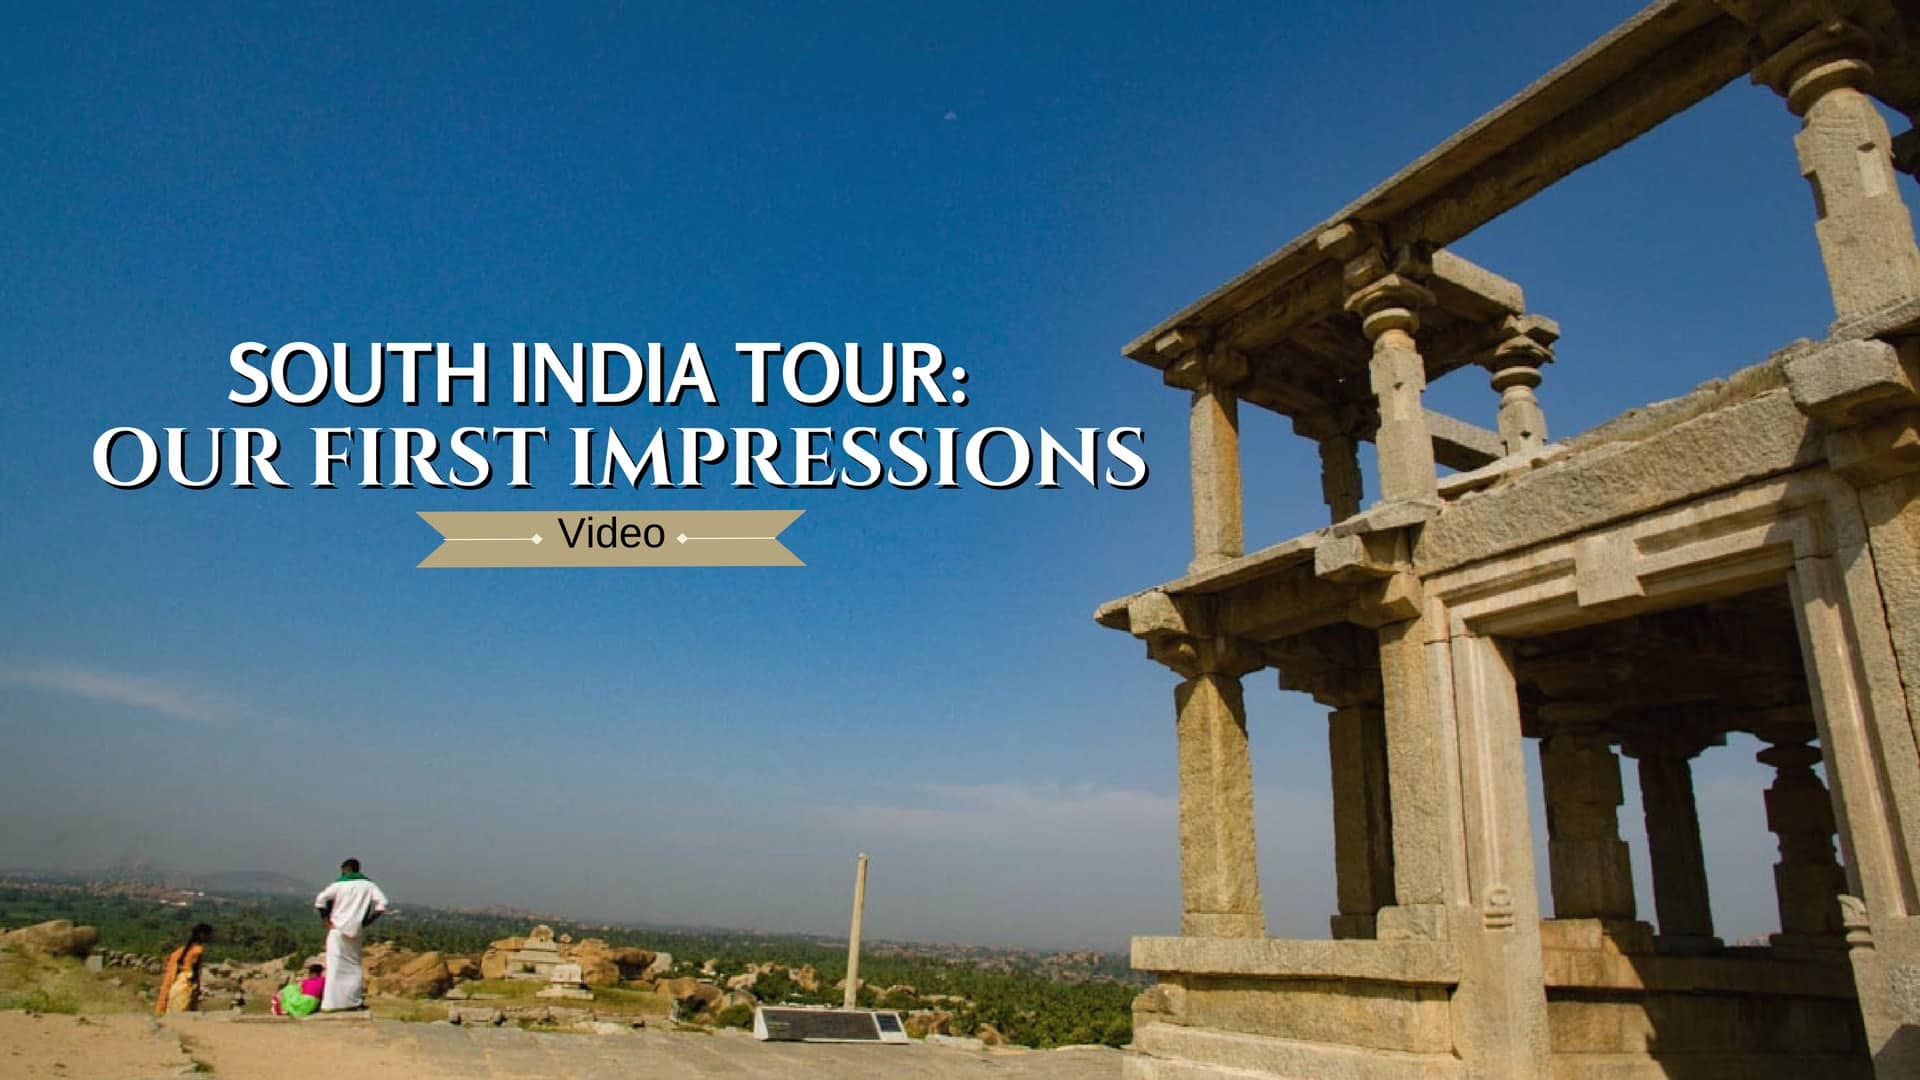 South India Tour: Our First Impressions (Video)